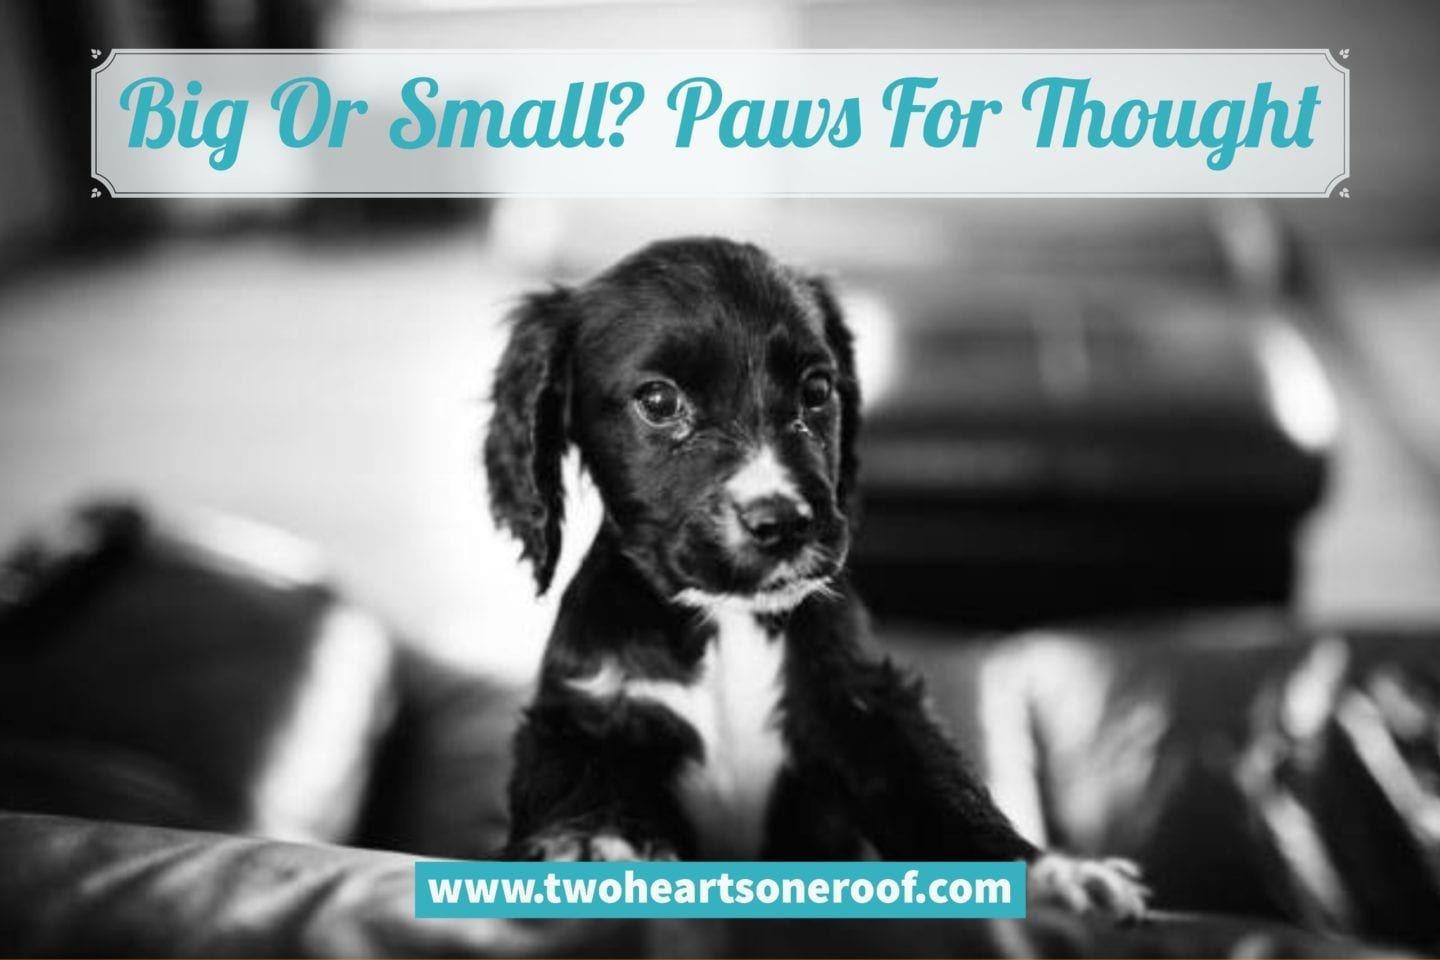 Big Or Small? Paws For Thought – What Pet Is Best For Your Family